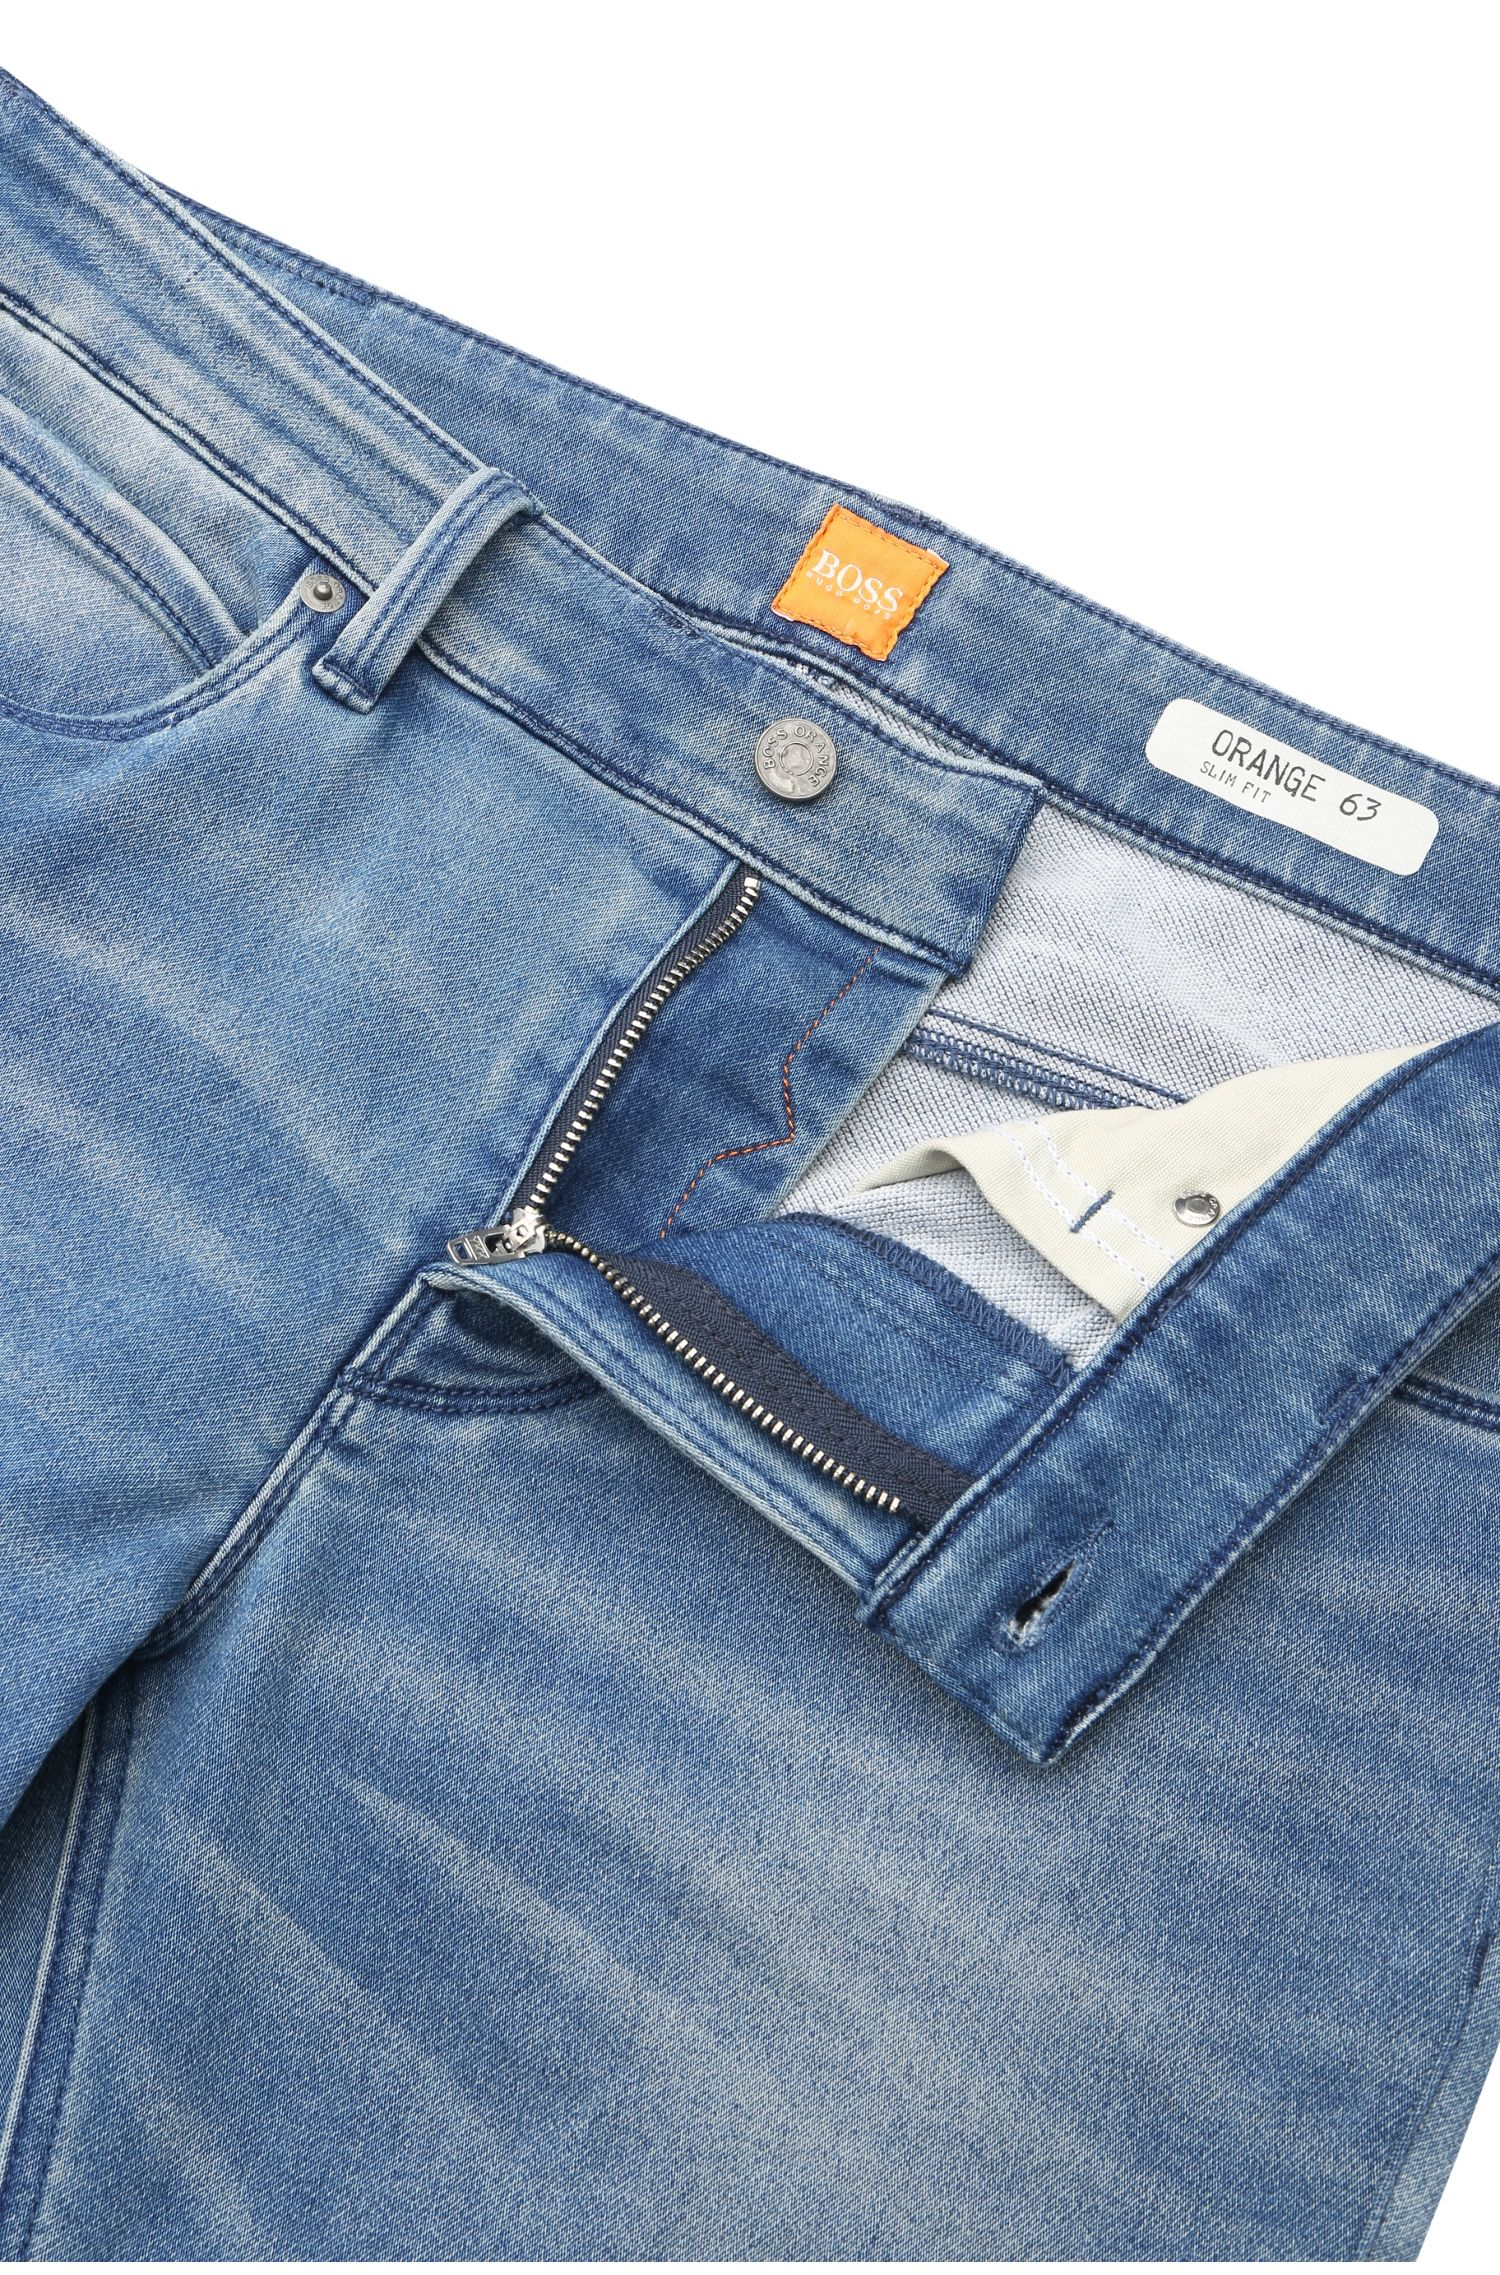 Jeans Slim Fit en coton mélangé extensible à l'aspect usé : « Orange63 »